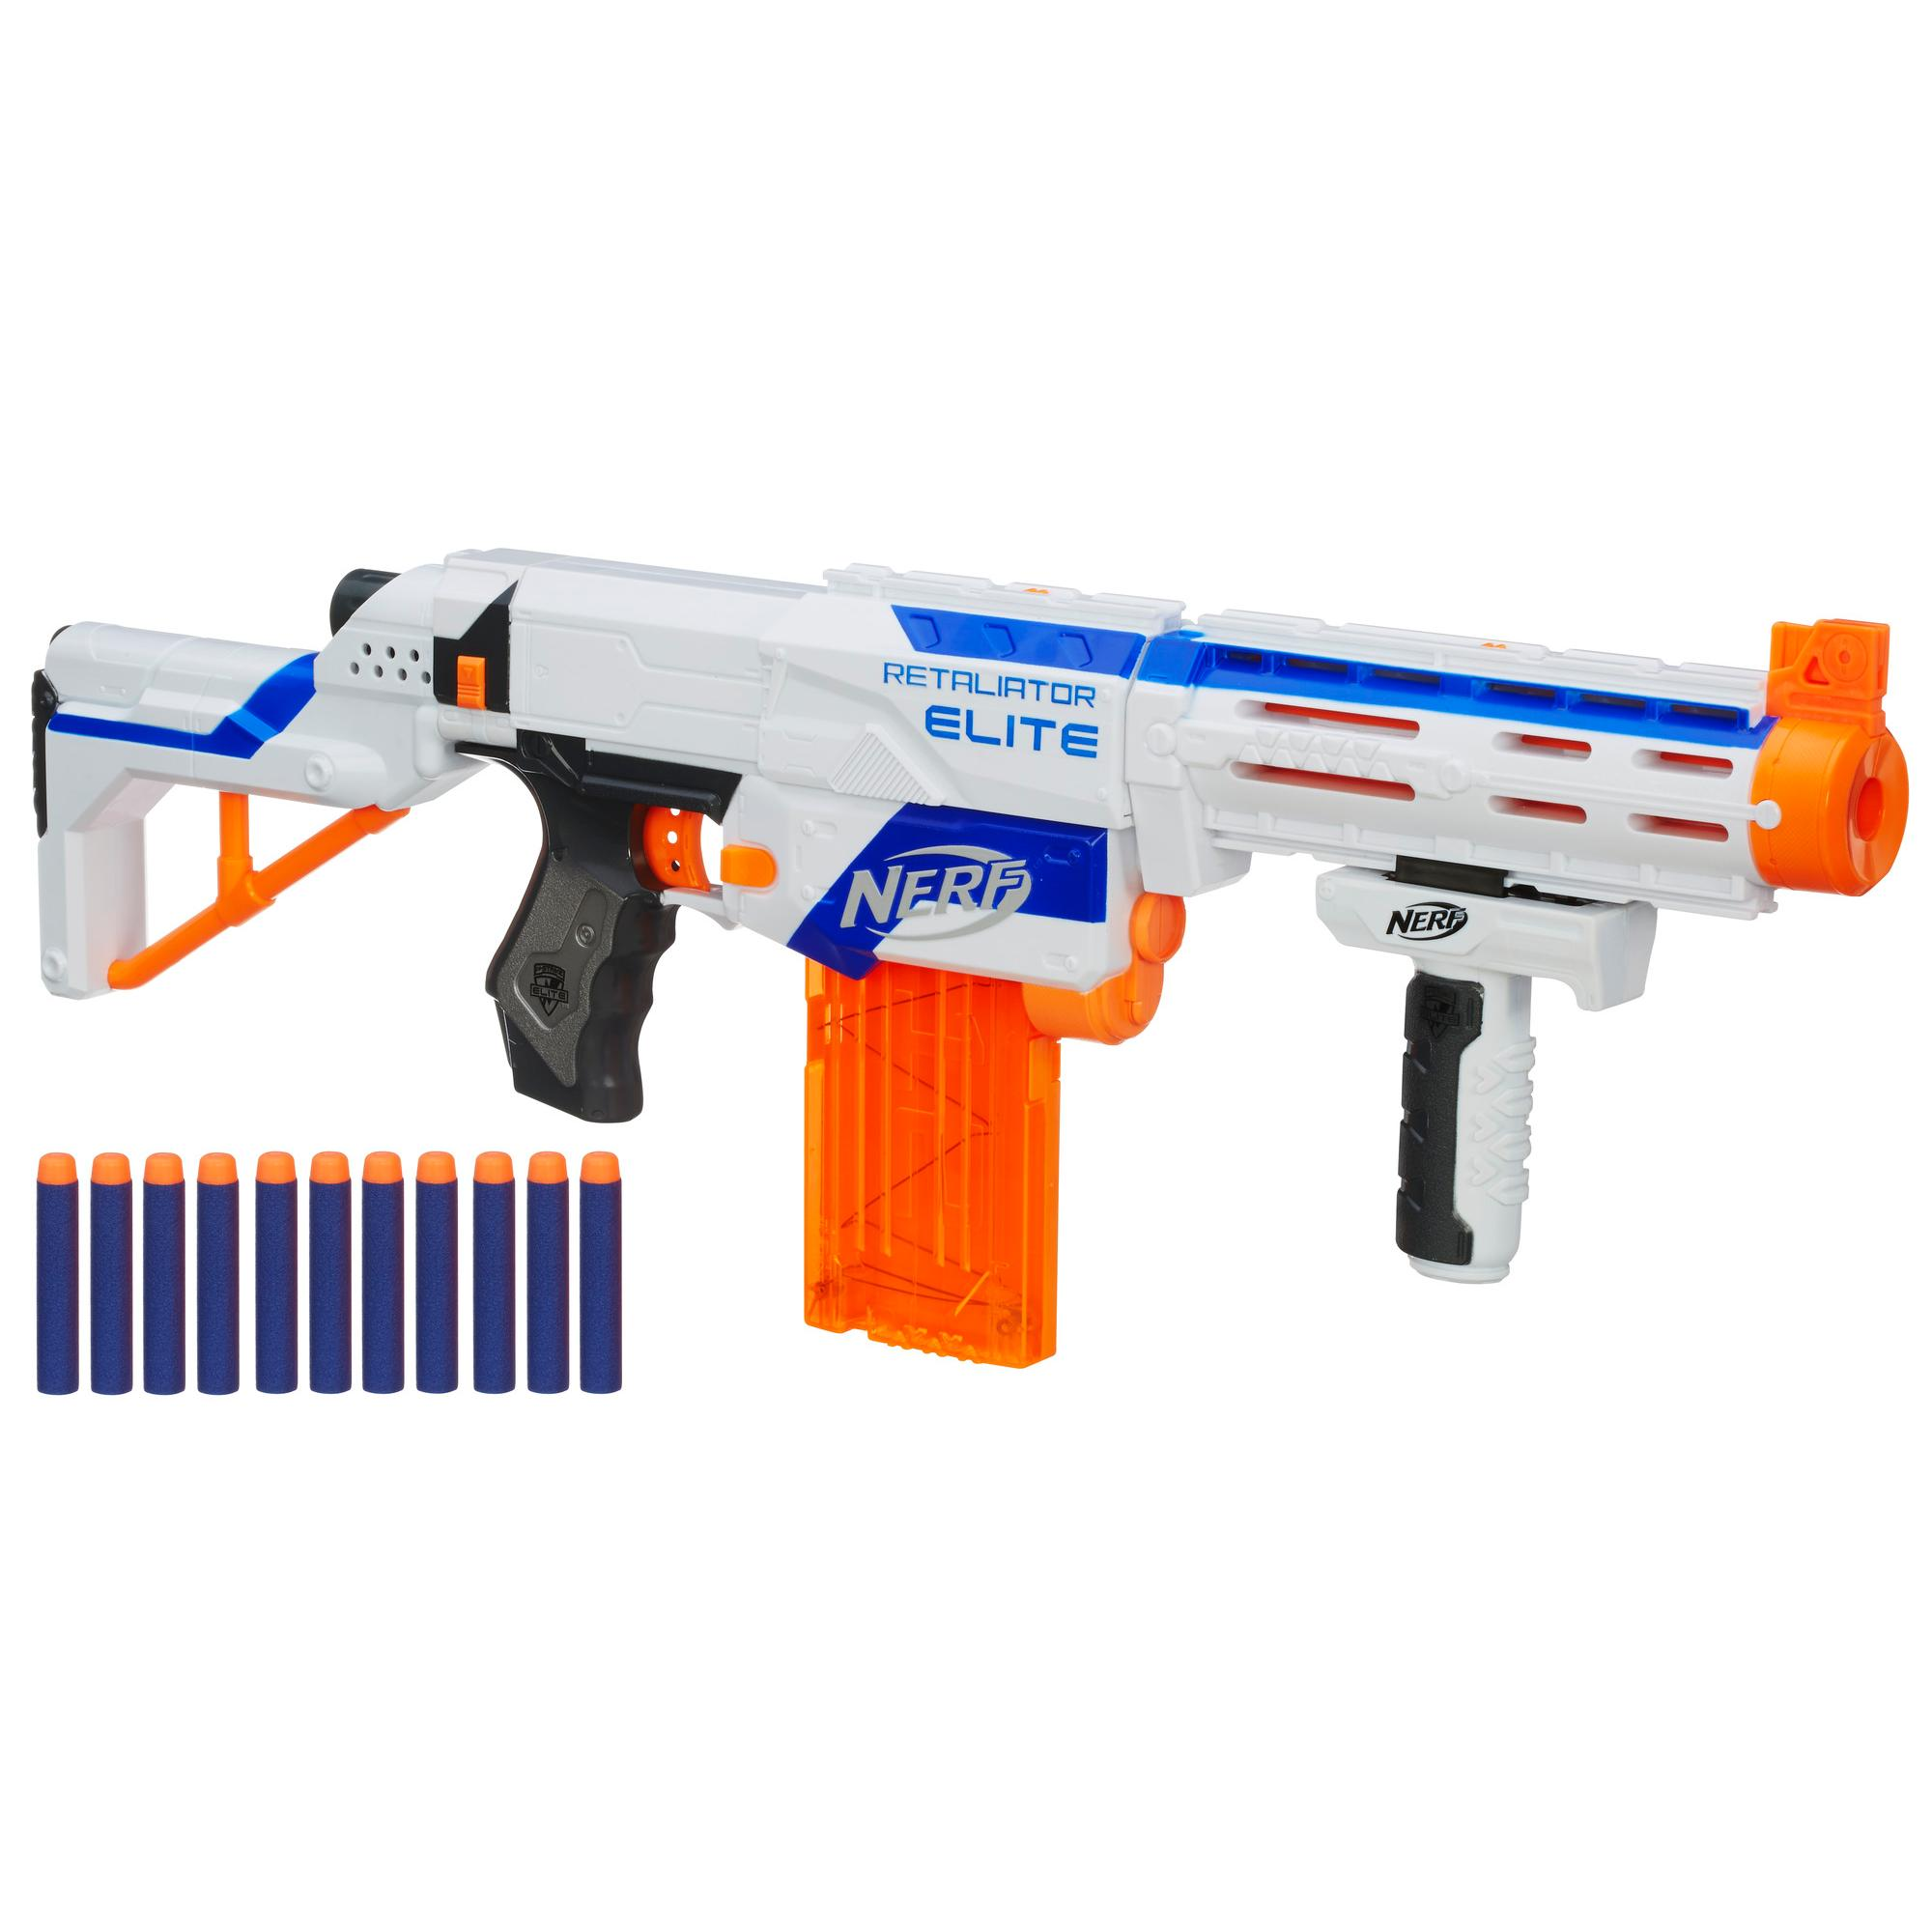 Nerf N'strike Elite Retailator